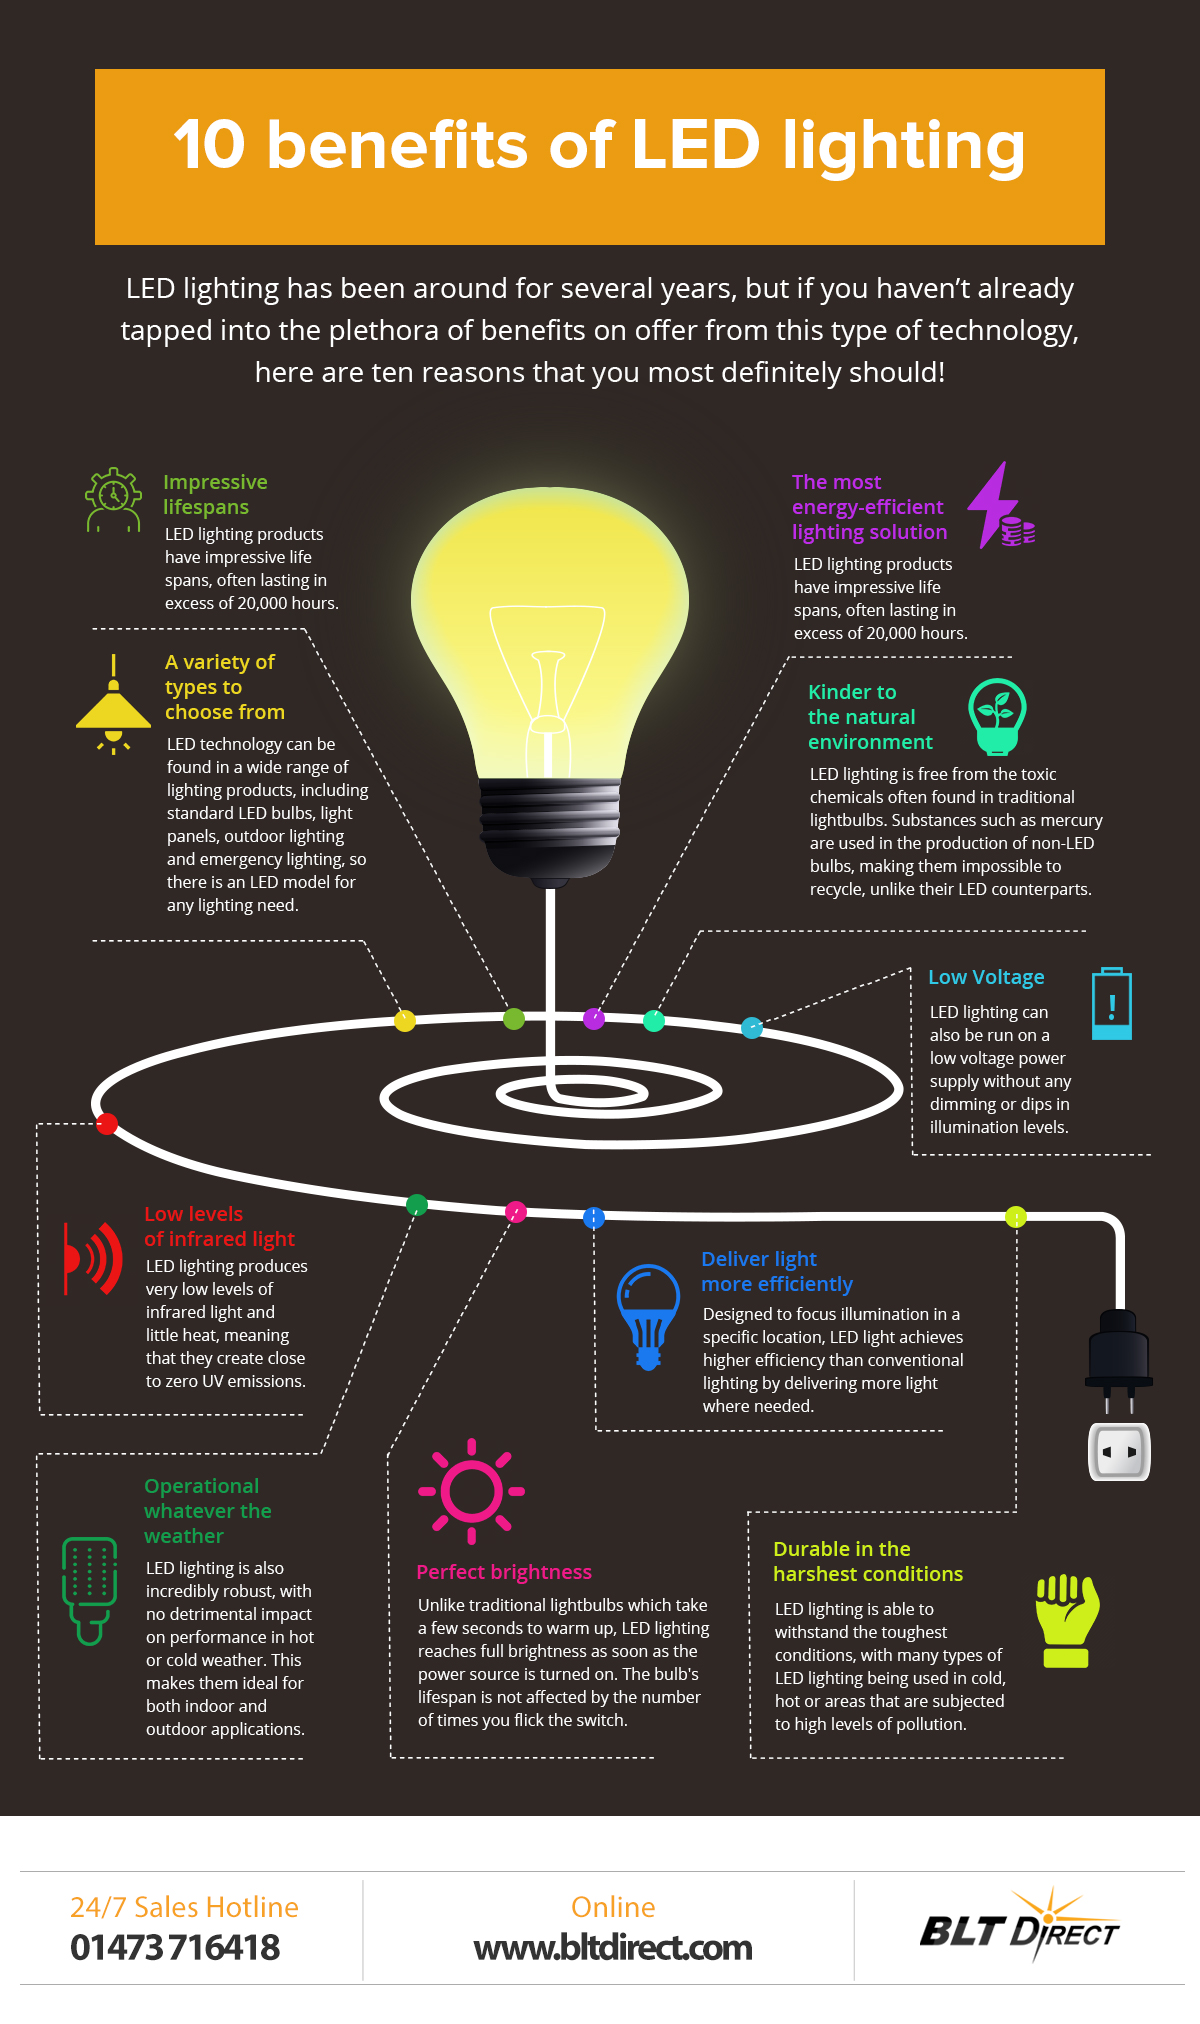 10 benefits of LED lighting